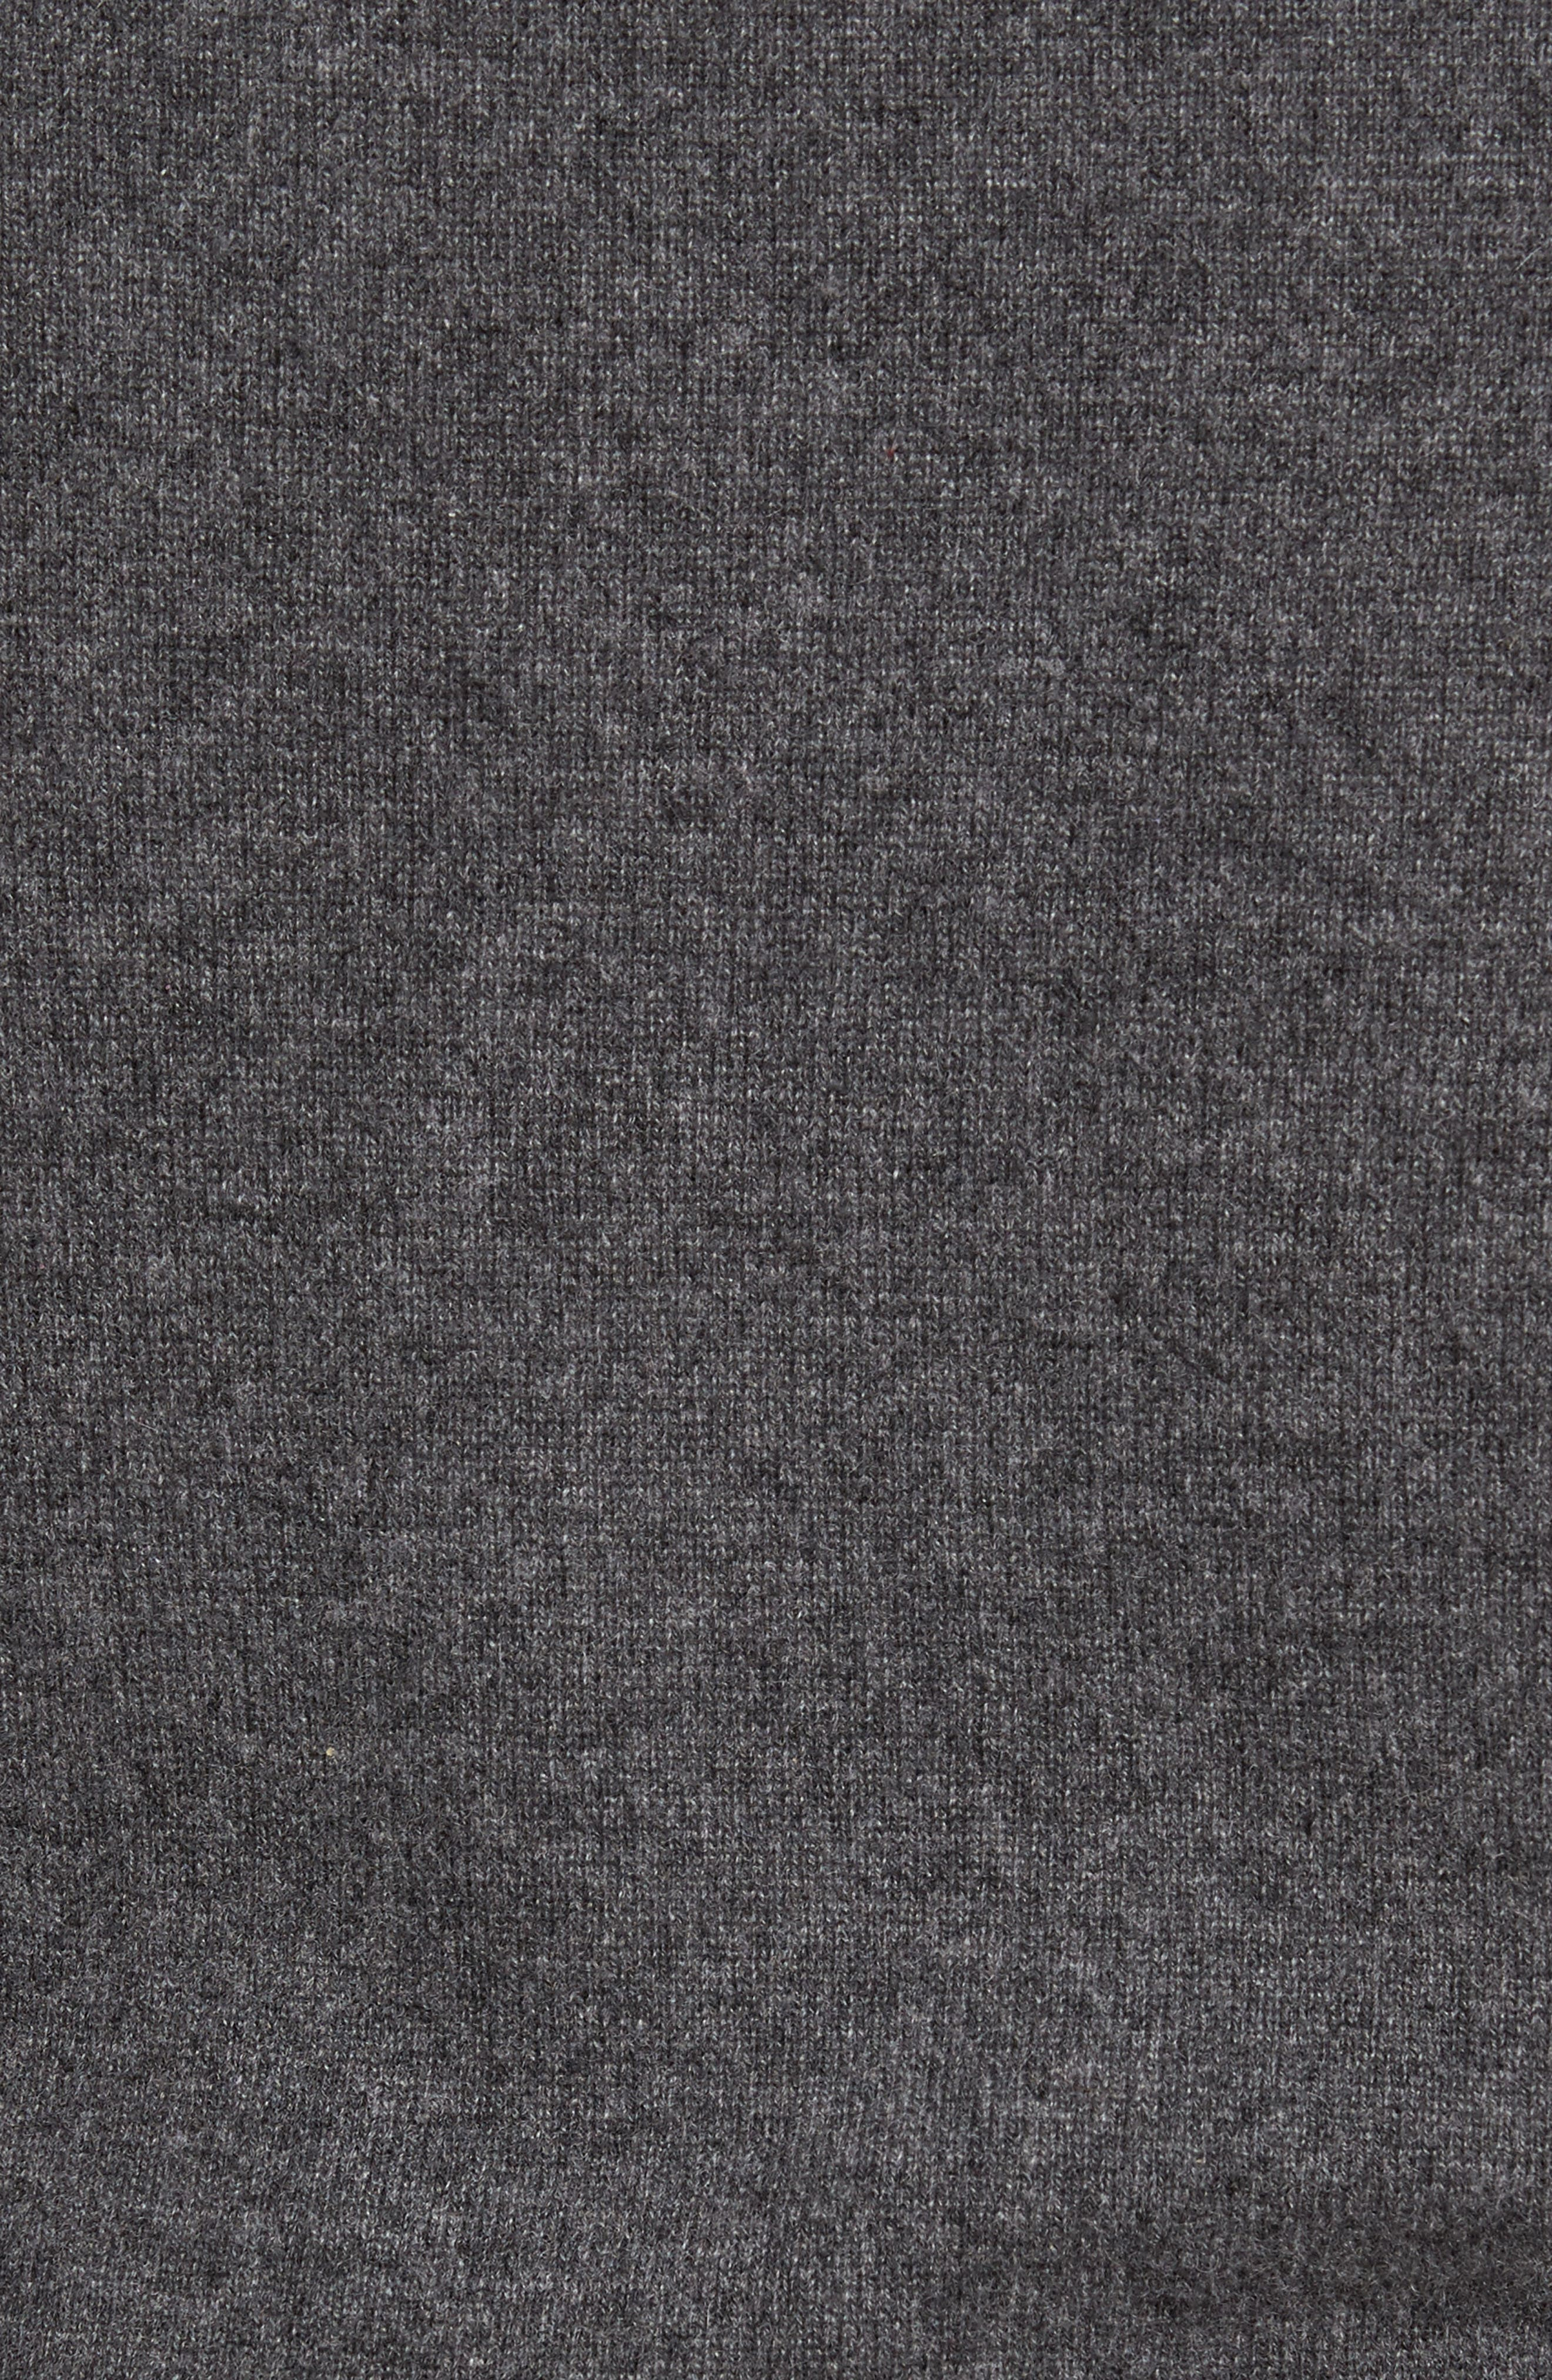 Cashmere V-Neck Sweater,                             Alternate thumbnail 5, color,                             GREY SHADE